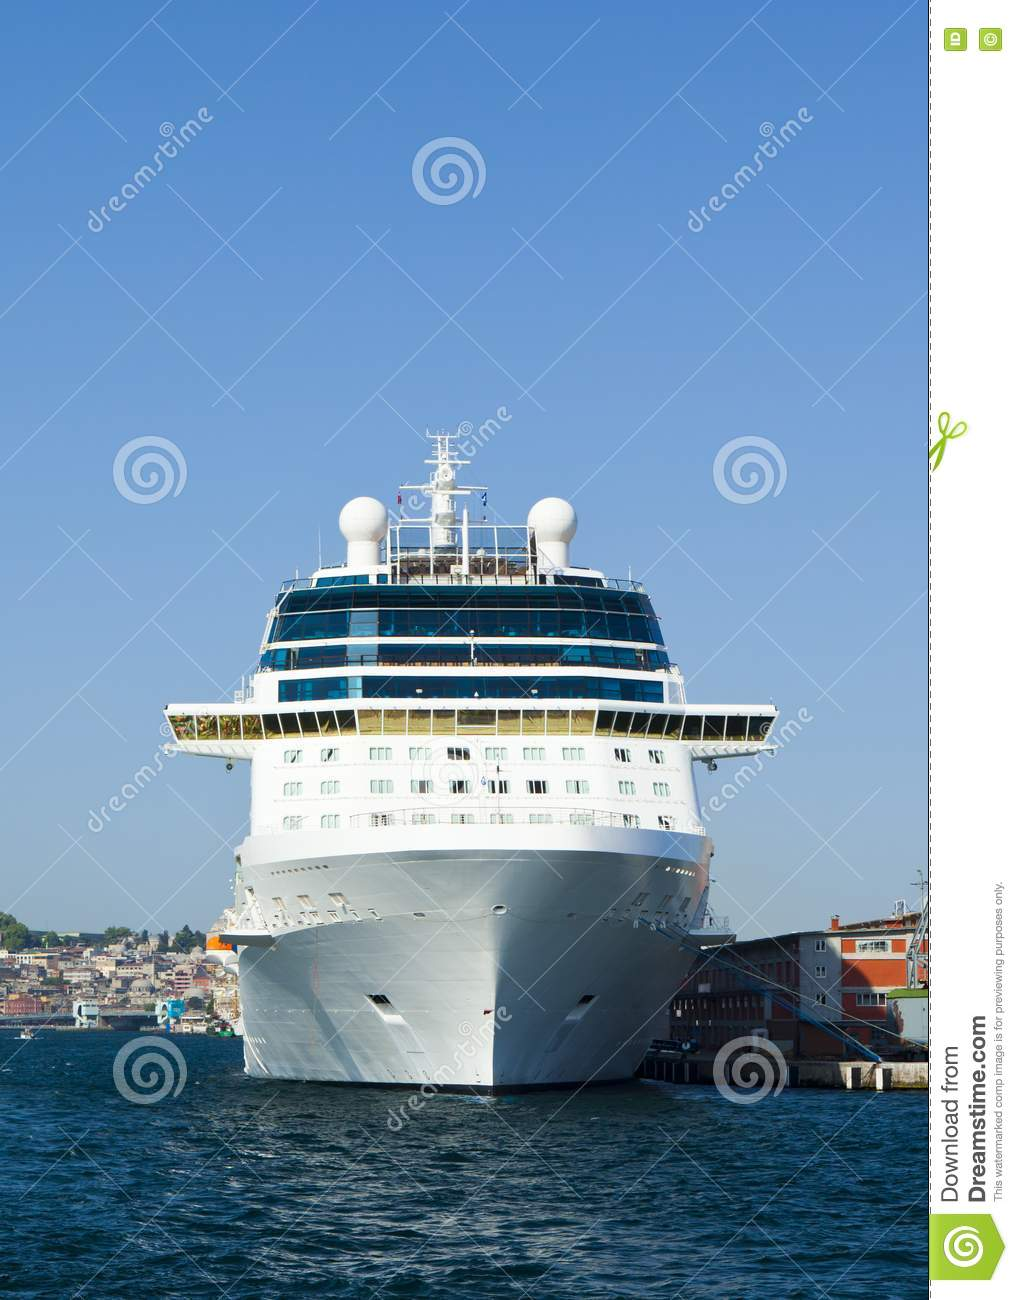 Cruise Ship Front View Stock Image  Image 22585771